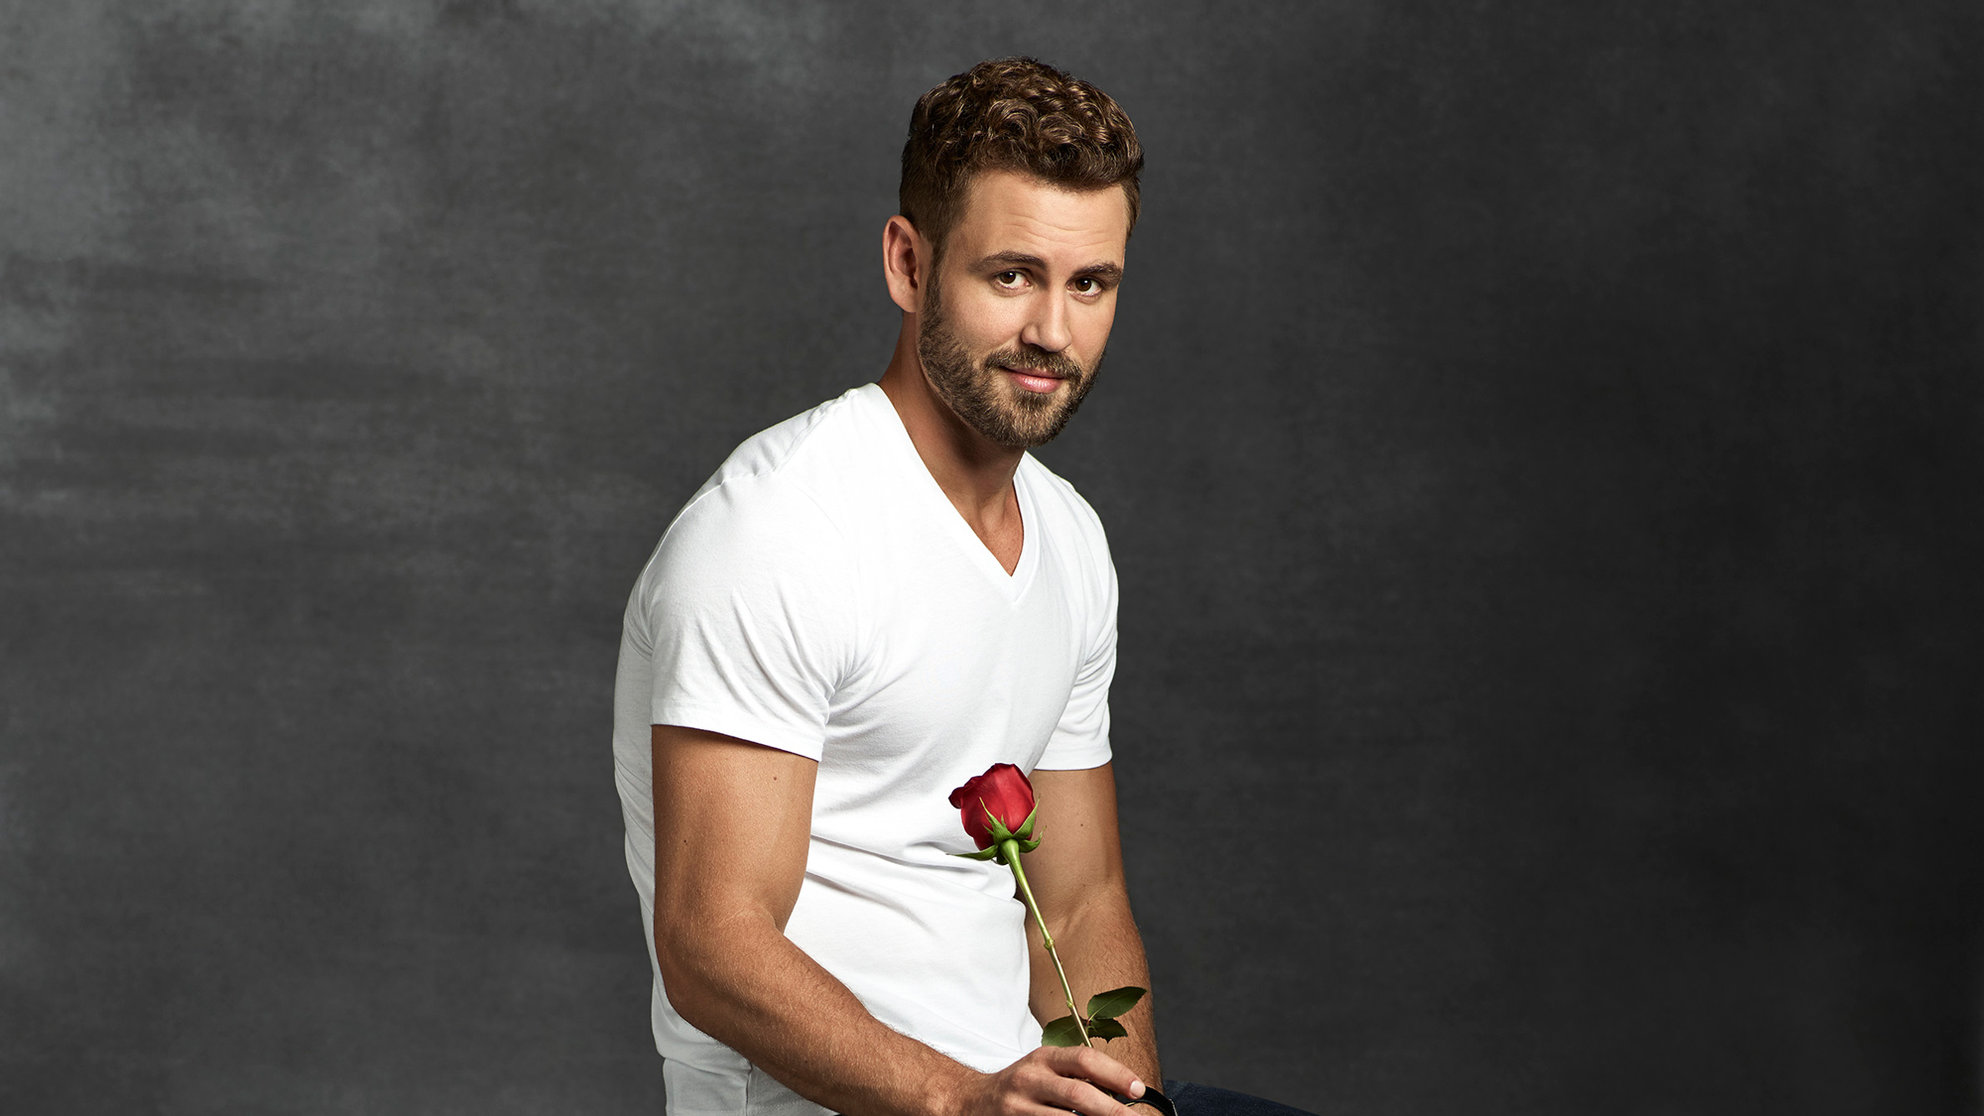 The Secret to Making a Good First Impression, According to Bachelor Nick Viall